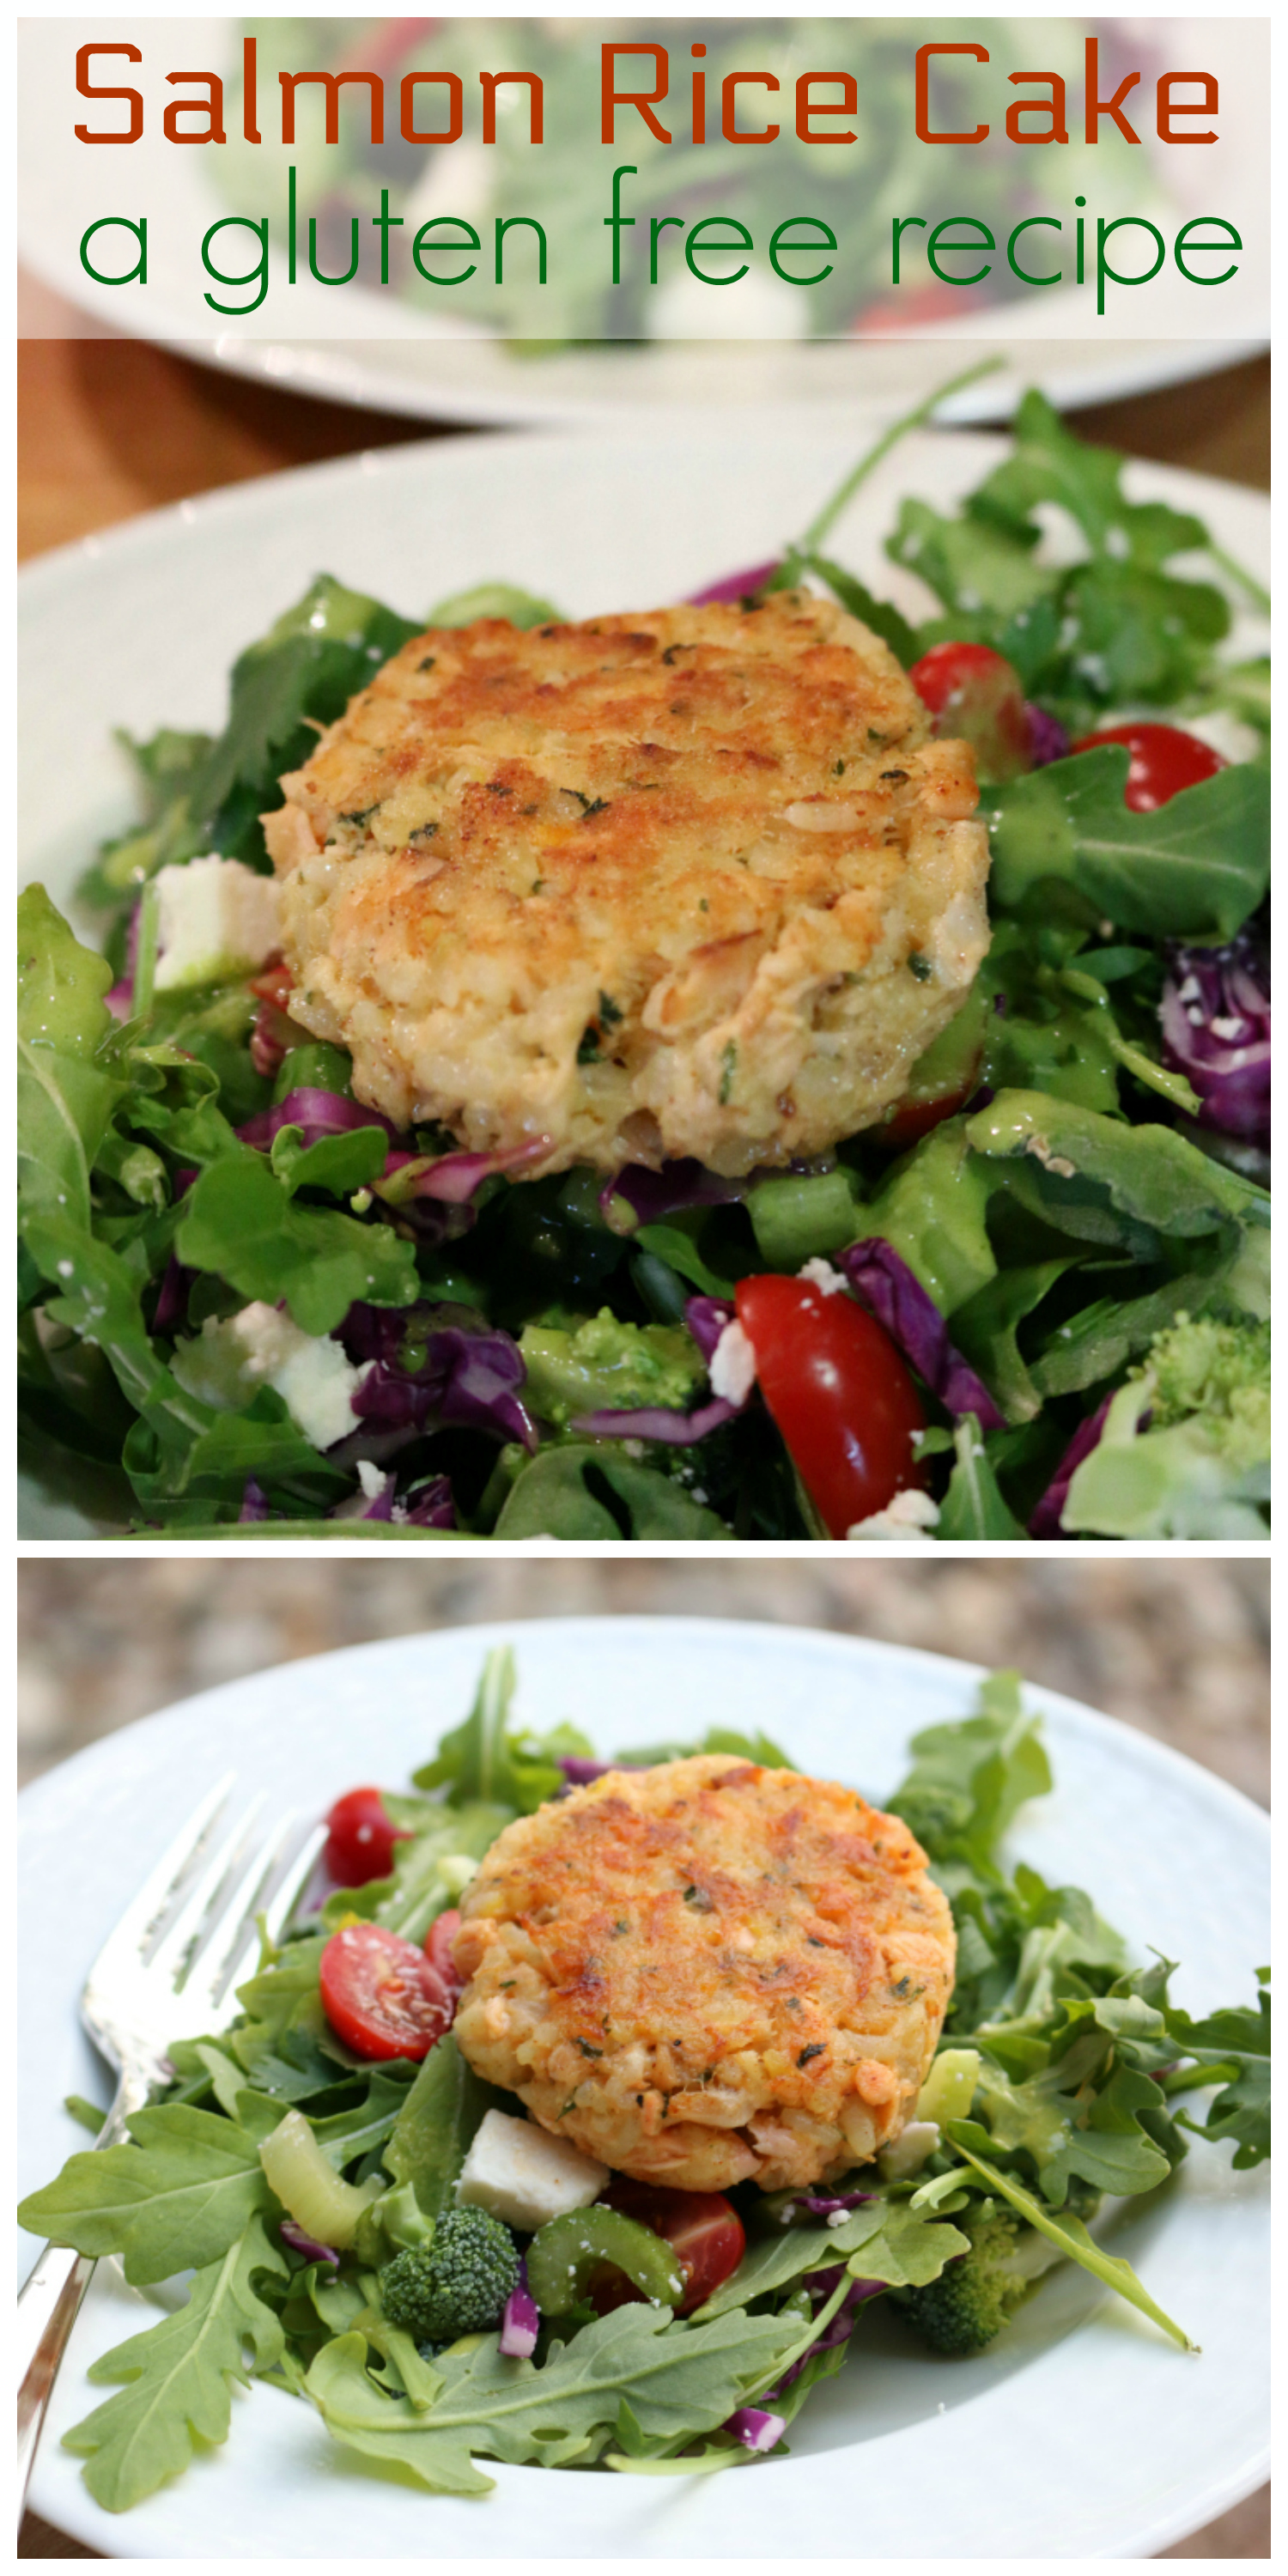 Gluten Free Salmon Rice Cakes over Arugula Salad  CeceliasGoodStuff.com  |  Good Food for Good People